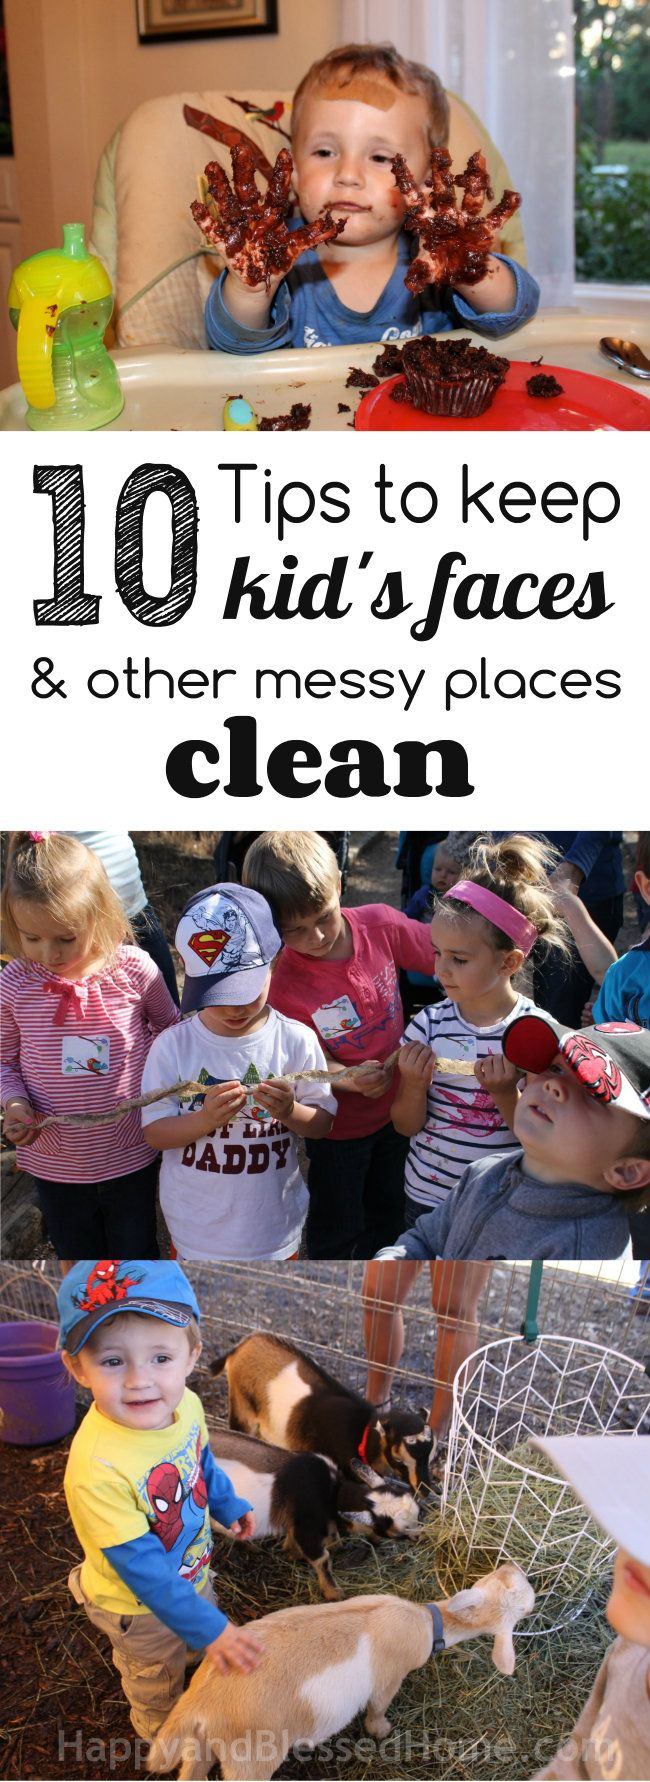 10 Tips to Keep Kid's Faces and Other Messy Places Clean from HappyandBlessedHome.com How to keep kid's hands, faces, bottoms, strollers, kitchens, eat-in-areas, place settings, art tables, and other places clean. #TripleClean #ad | Clean Kids | Clean Home | Clean Car @Huggies